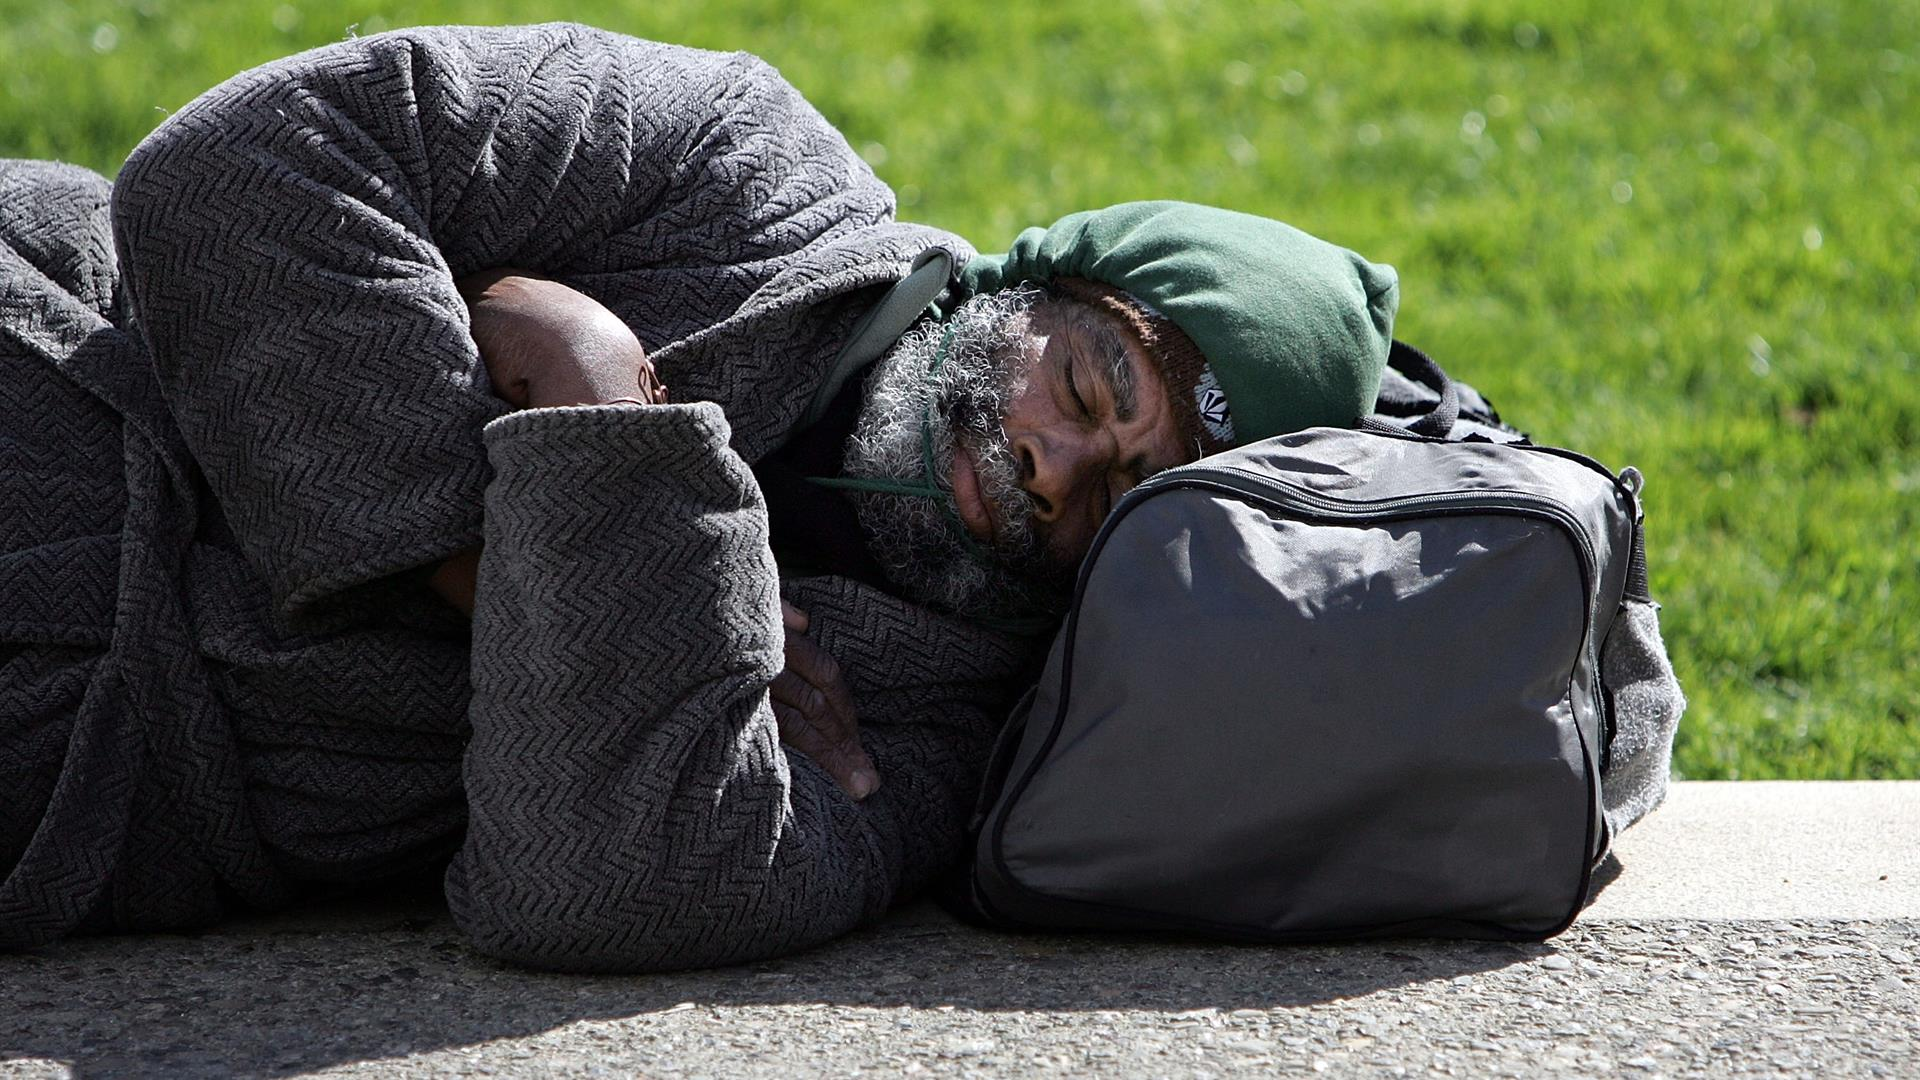 Homeless Justin Sullivan:Getty Images